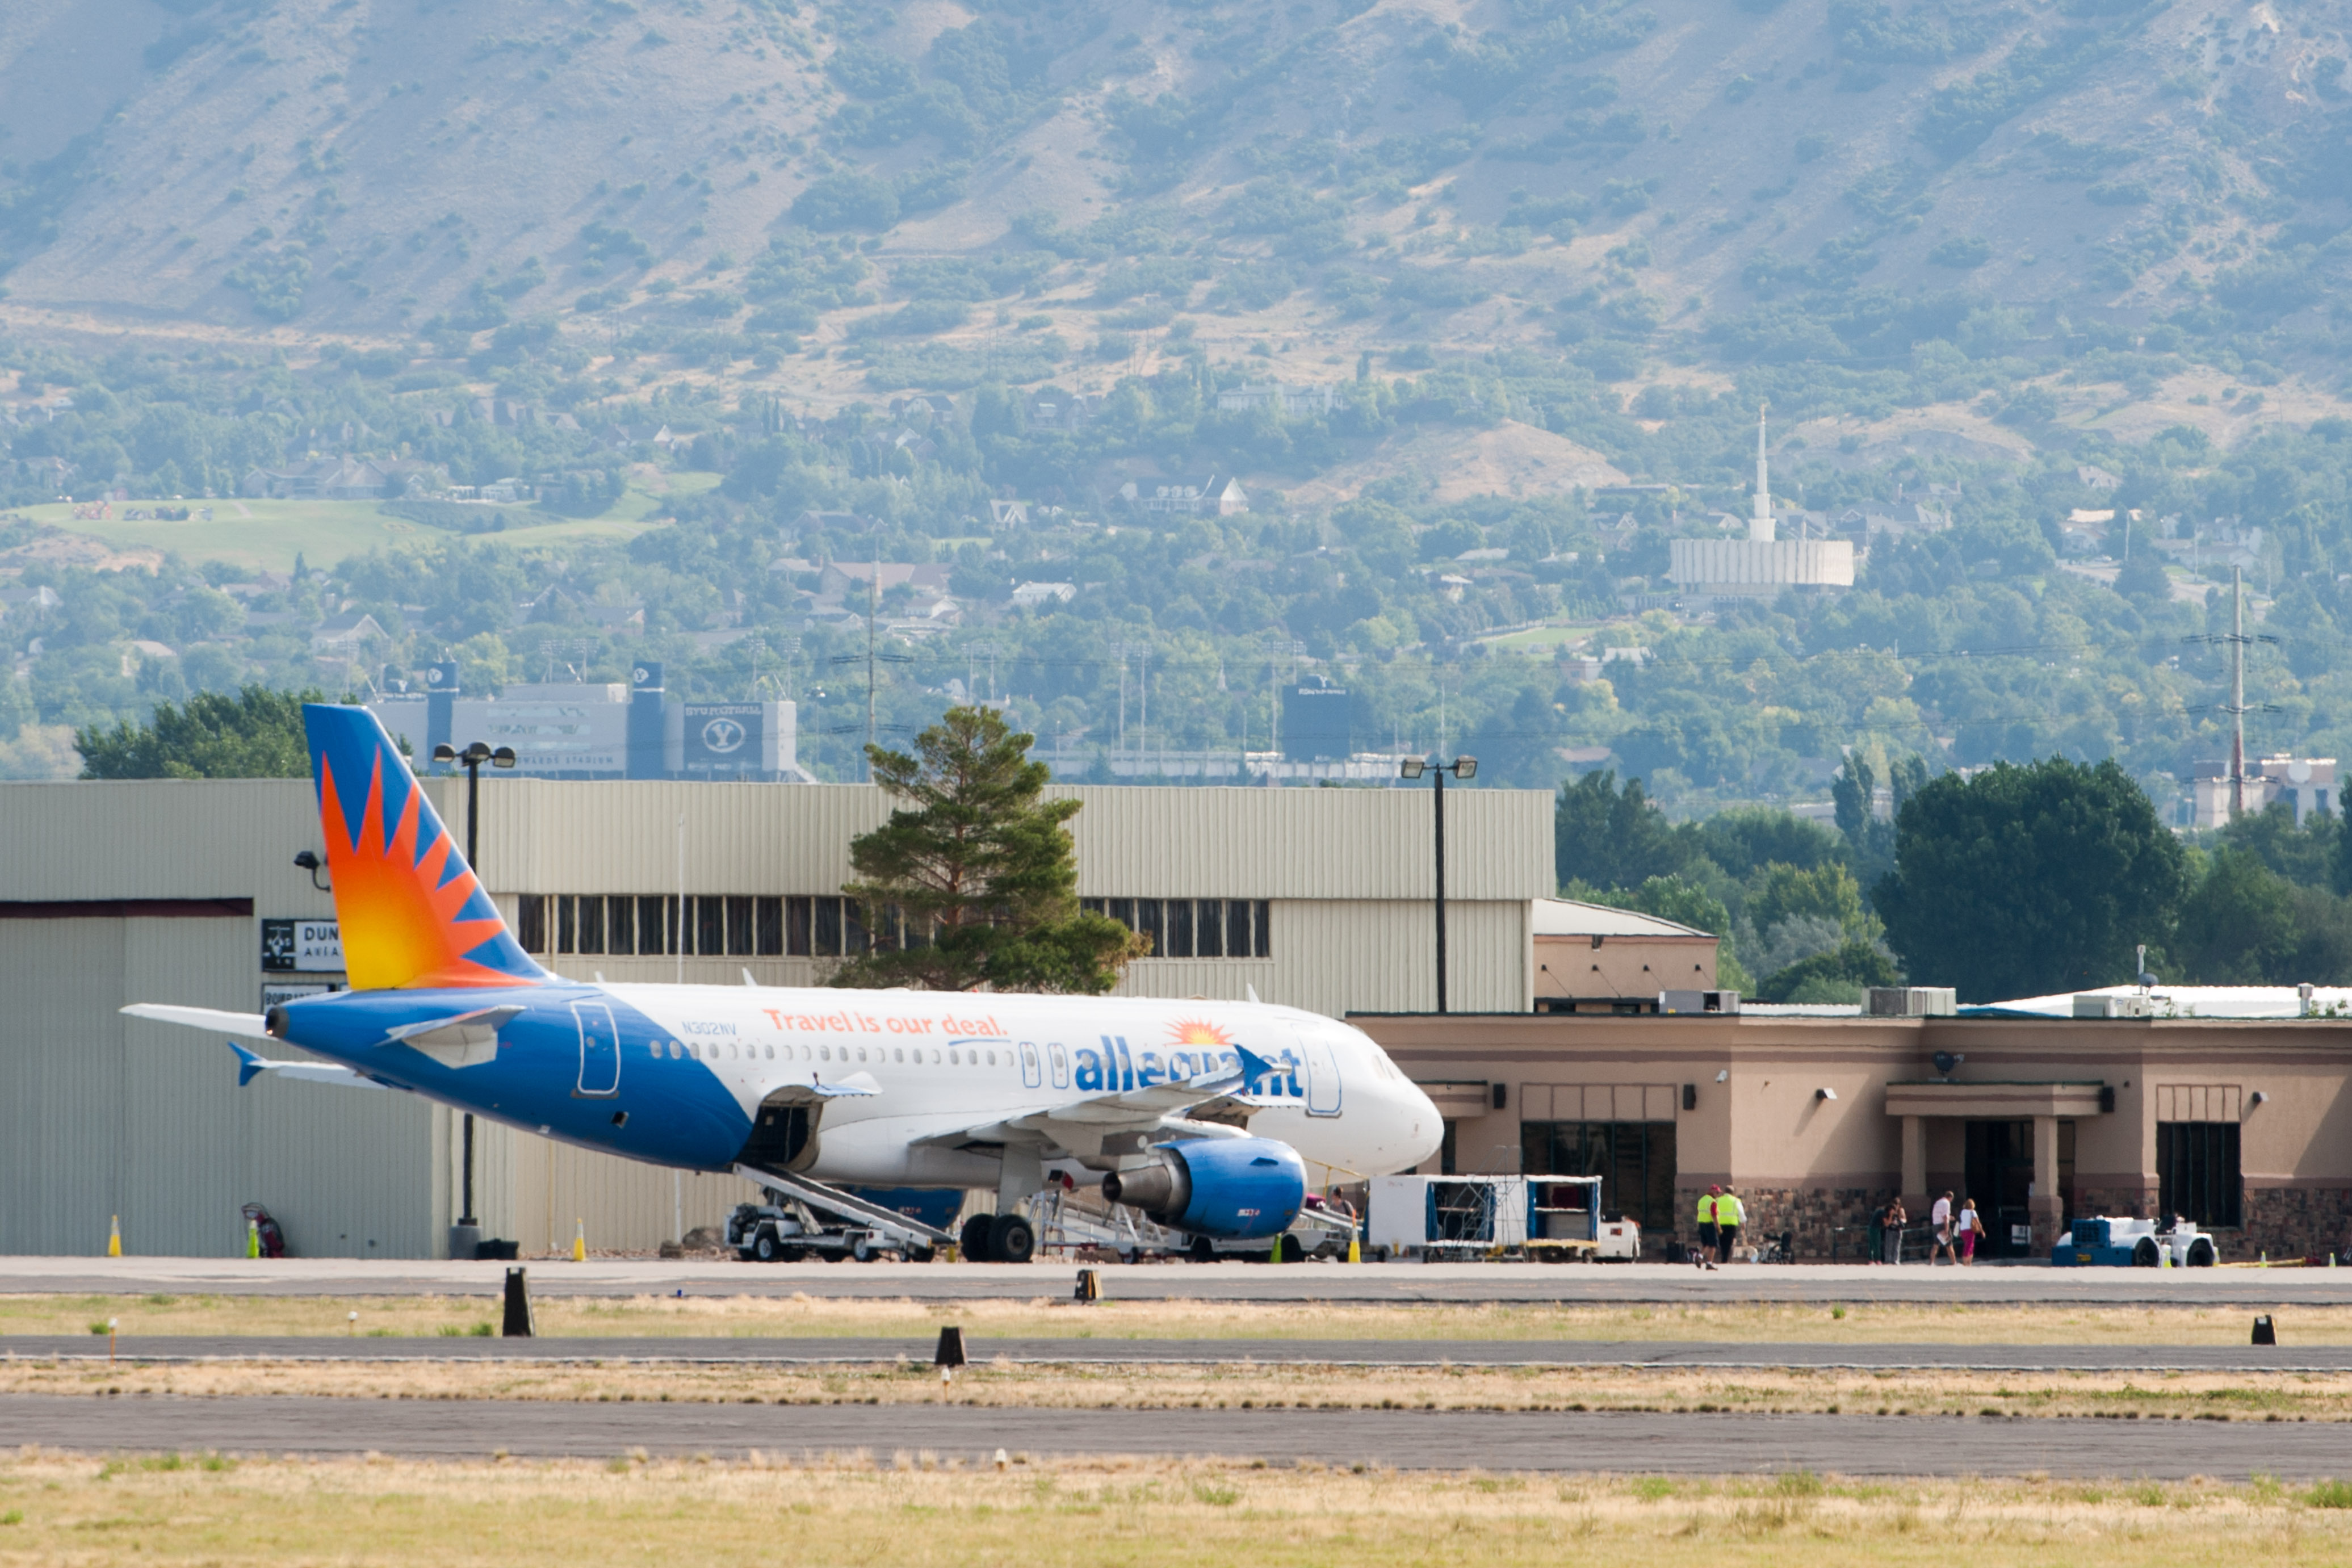 New Los Angeles Flight Added To Provo Airport The Daily